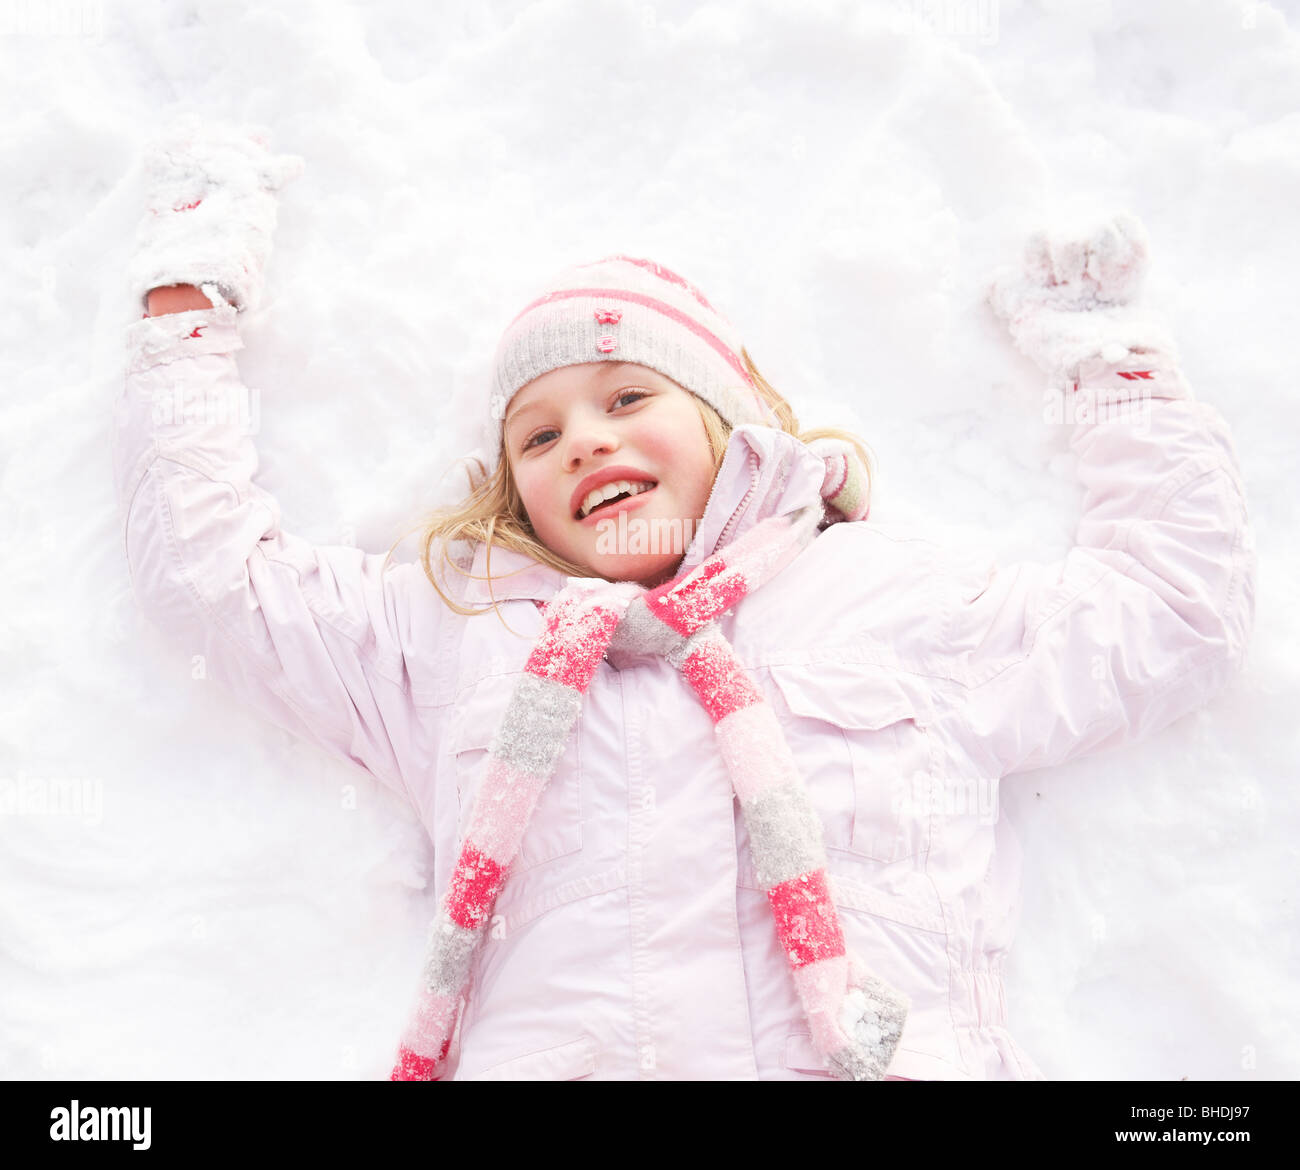 Girl Laying On Ground Making Snow Angel - Stock Image